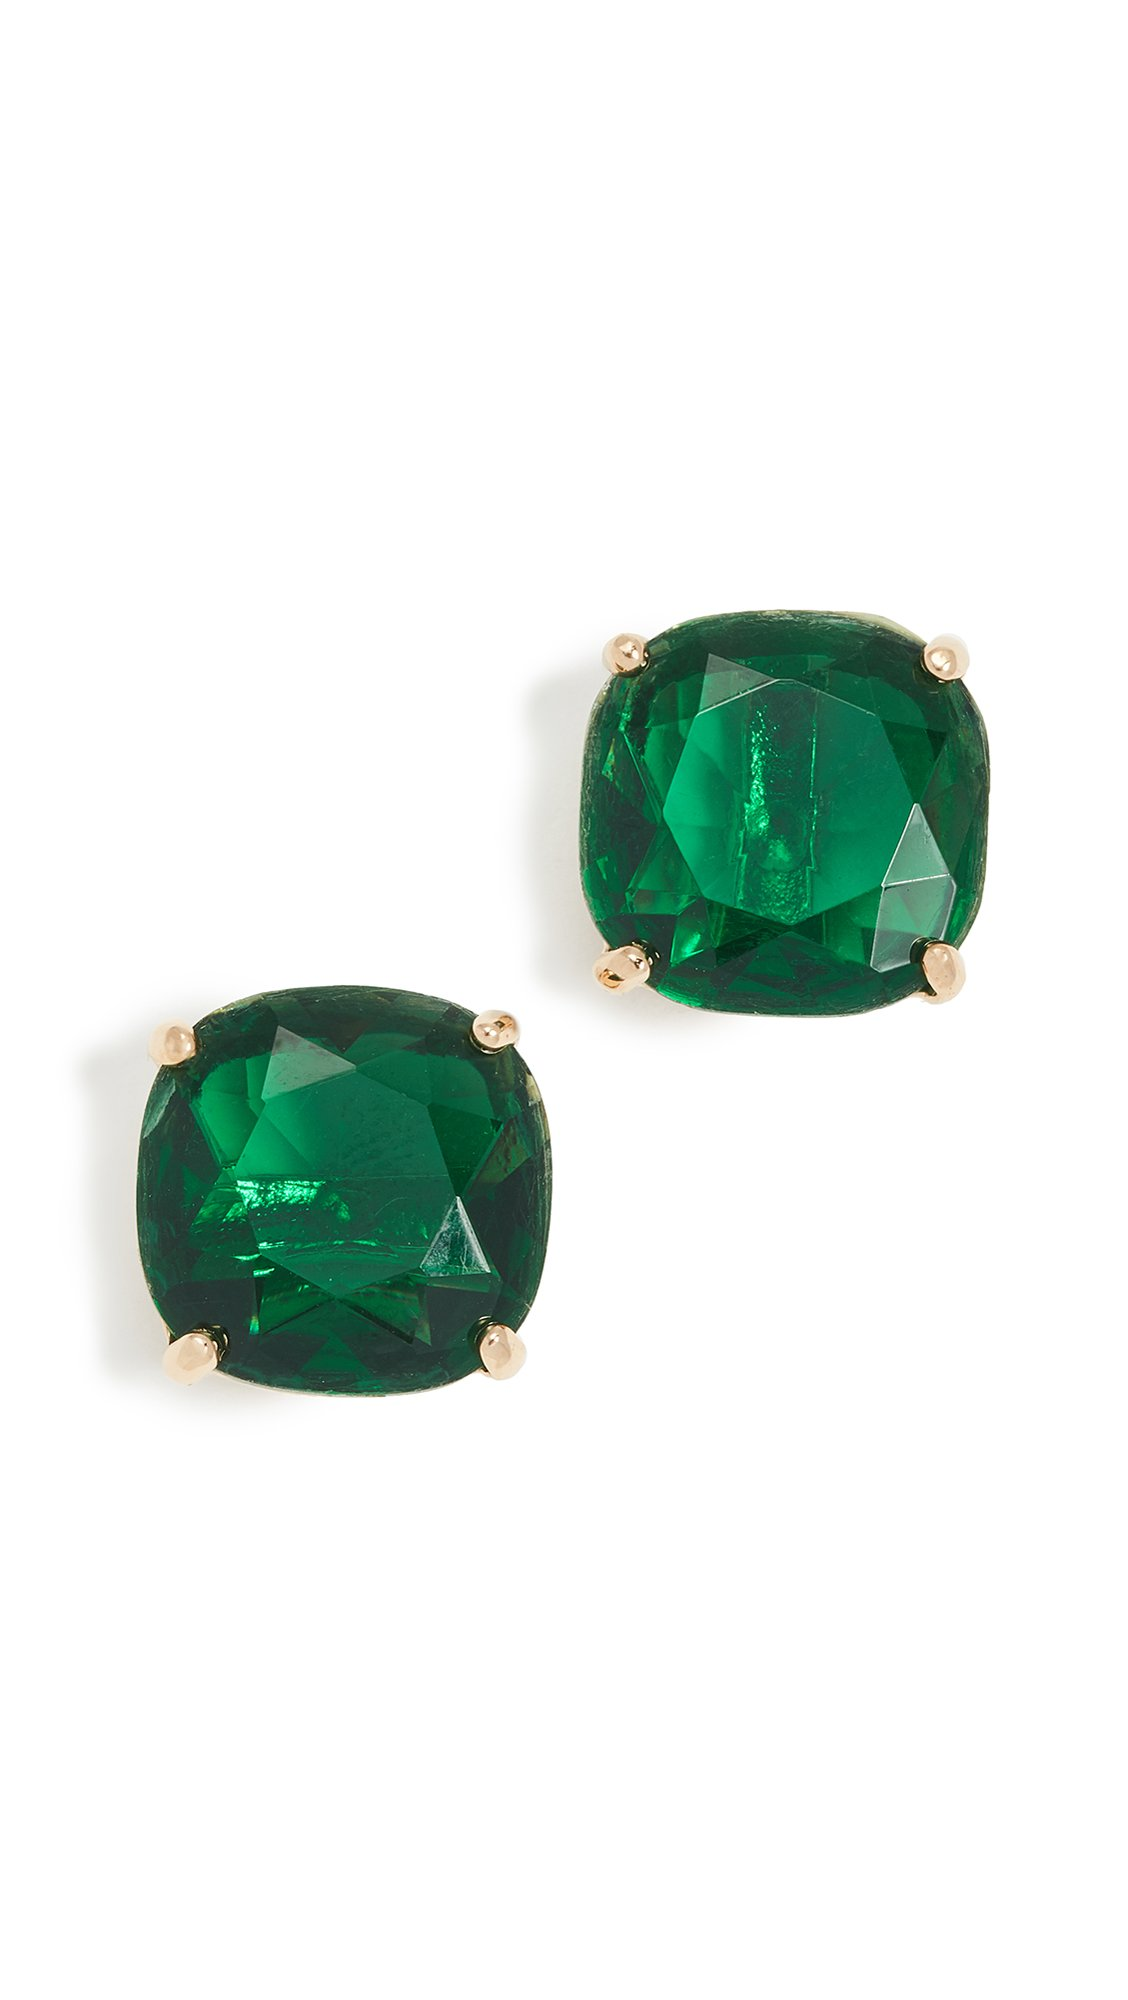 Kate Spade New York Women's Small Square Stud Earrings, Emerald, One Size